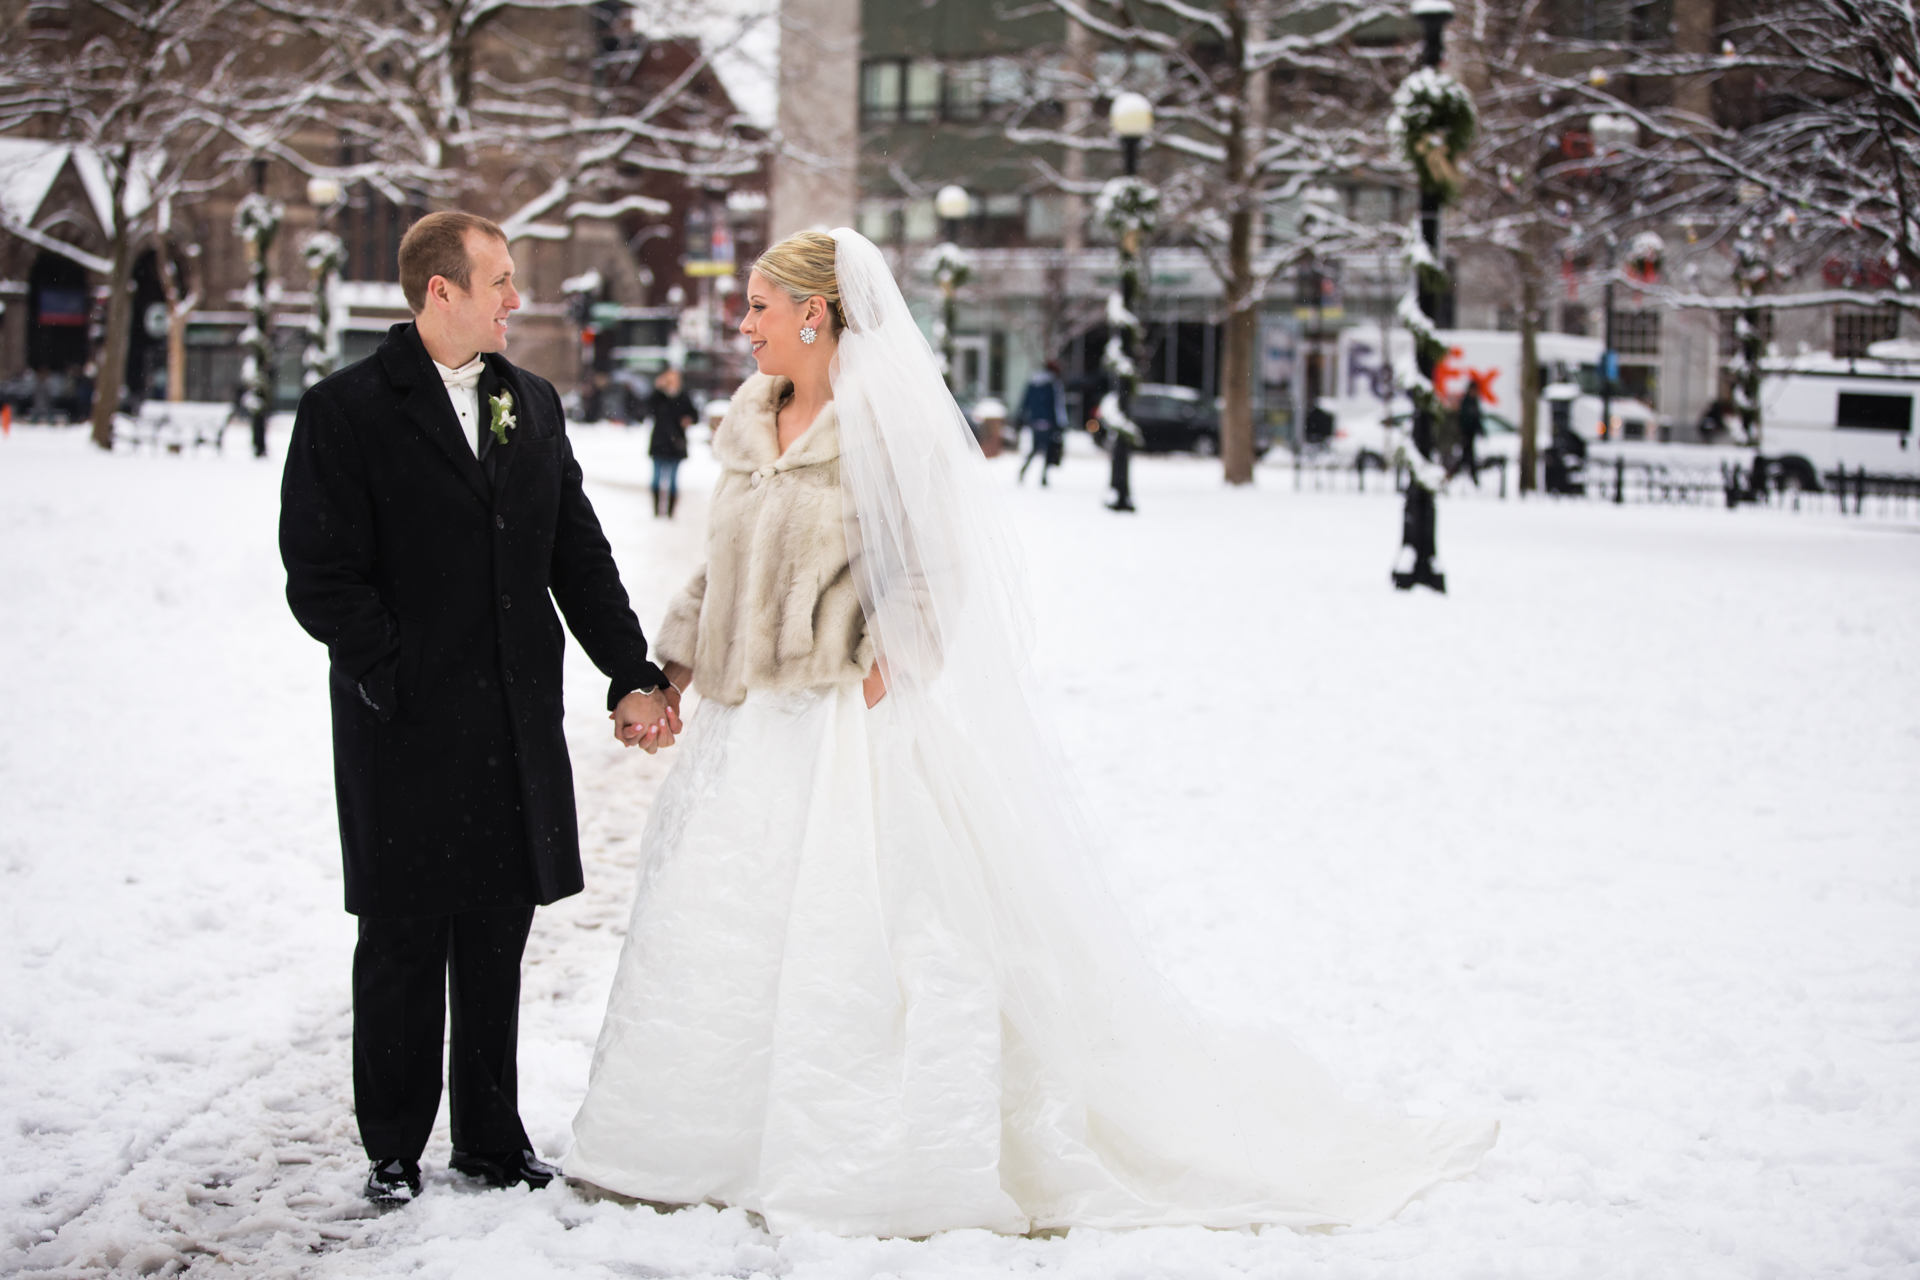 Boston-Fairmont-Copley-Plaza-Wedding-AmandaMorgan-Photography-41.jpg